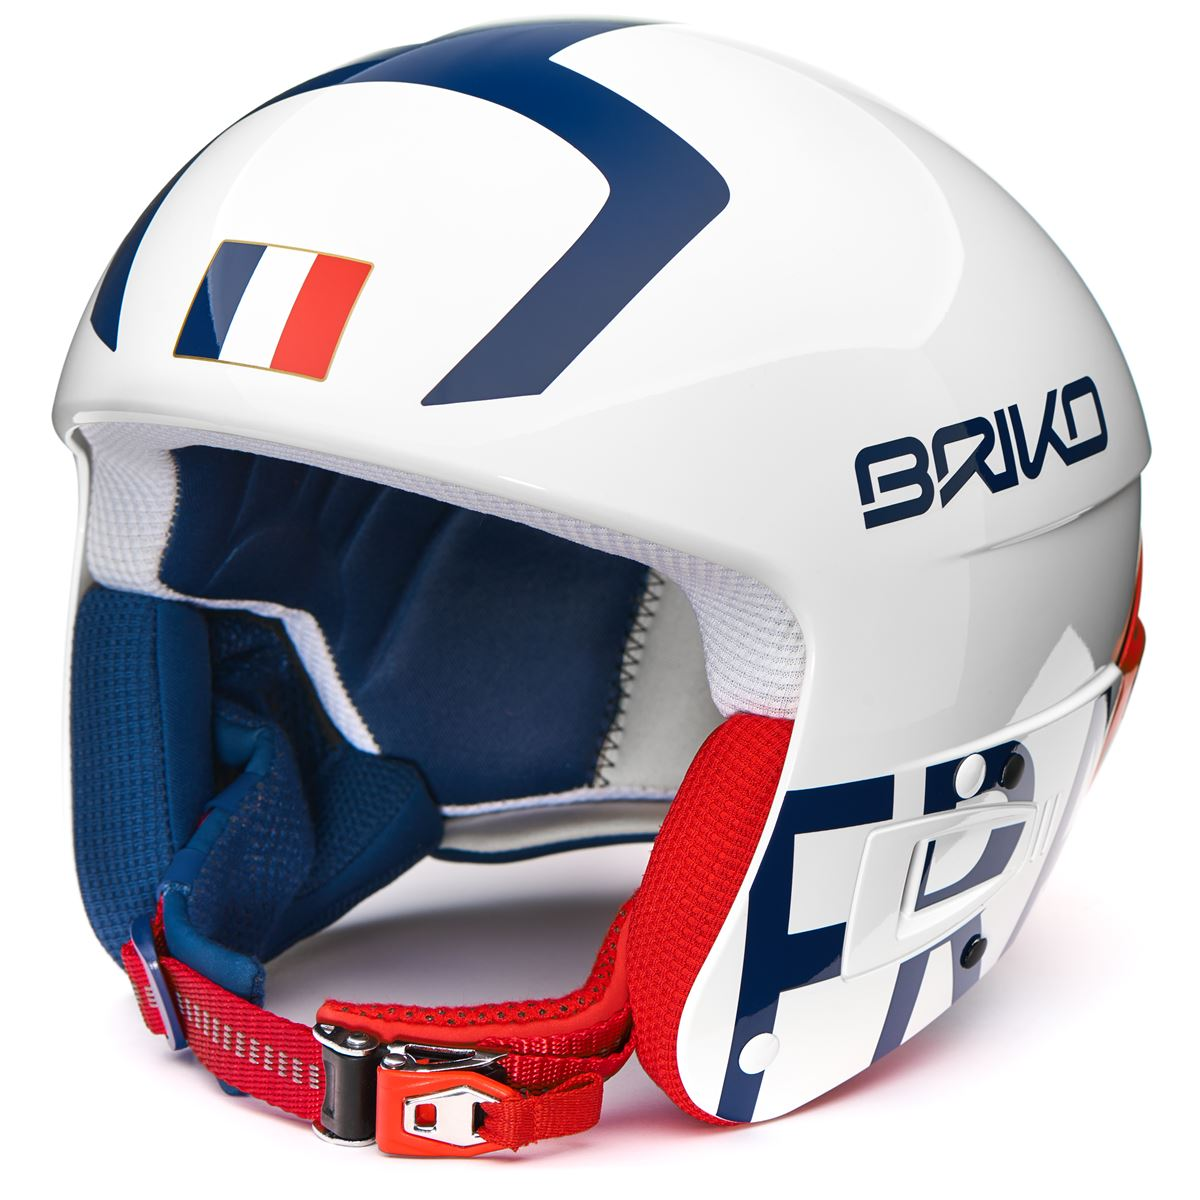 Briko HELMETS VULCANO FIS 6.8 - FRANCE Junior Boy Girl Helmet